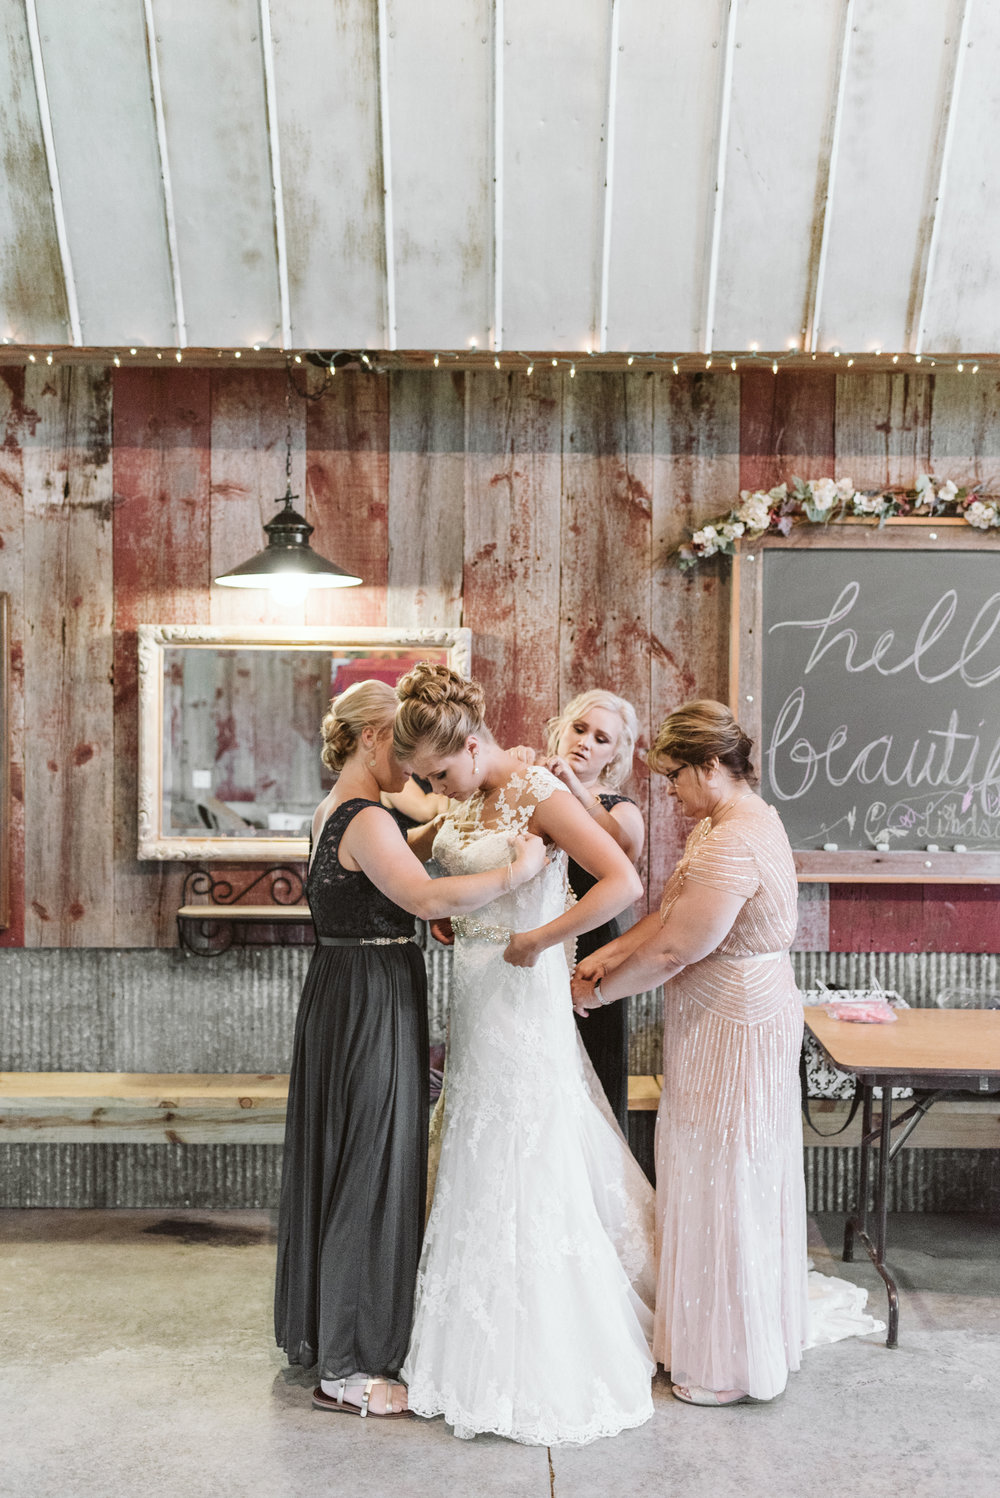 Busy-Barns-Adventure-Farm_Wedding _Fort_atkinson_Wisconsin-Gavyn-Taylor-Photo (24 of 188).jpg